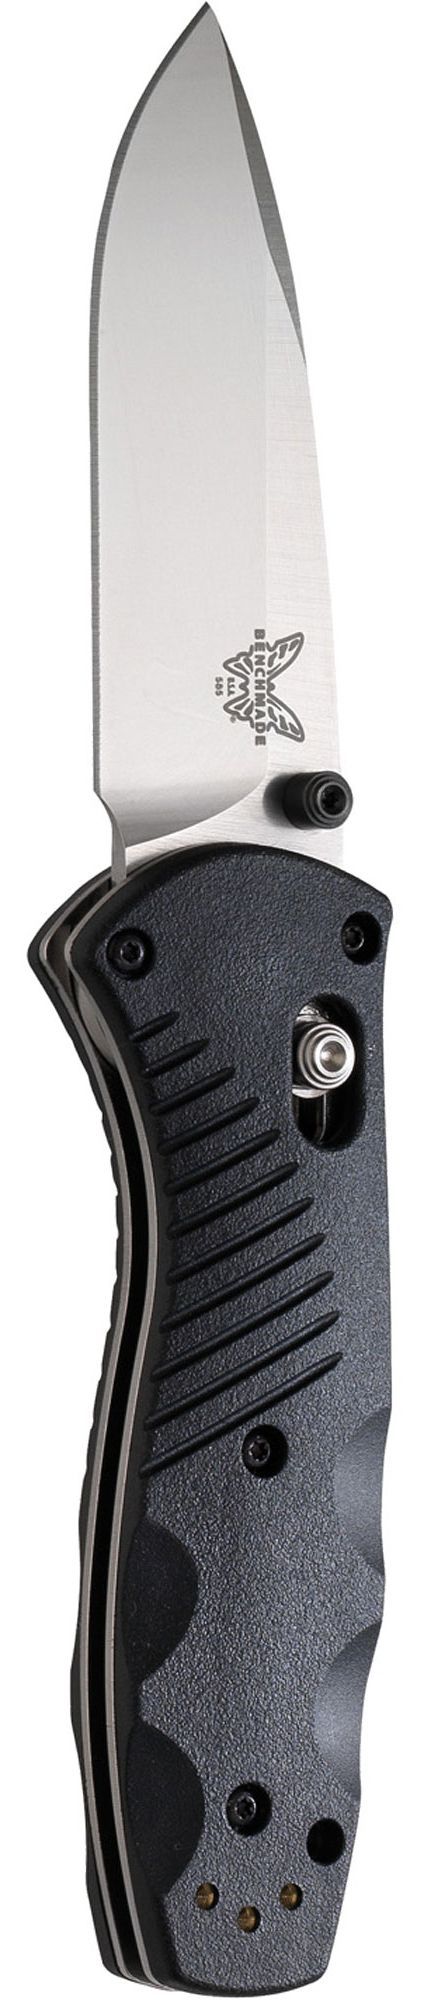 Benchmade Knives 585 Mini-Barrage AXIS-Assist Drop Point Knife